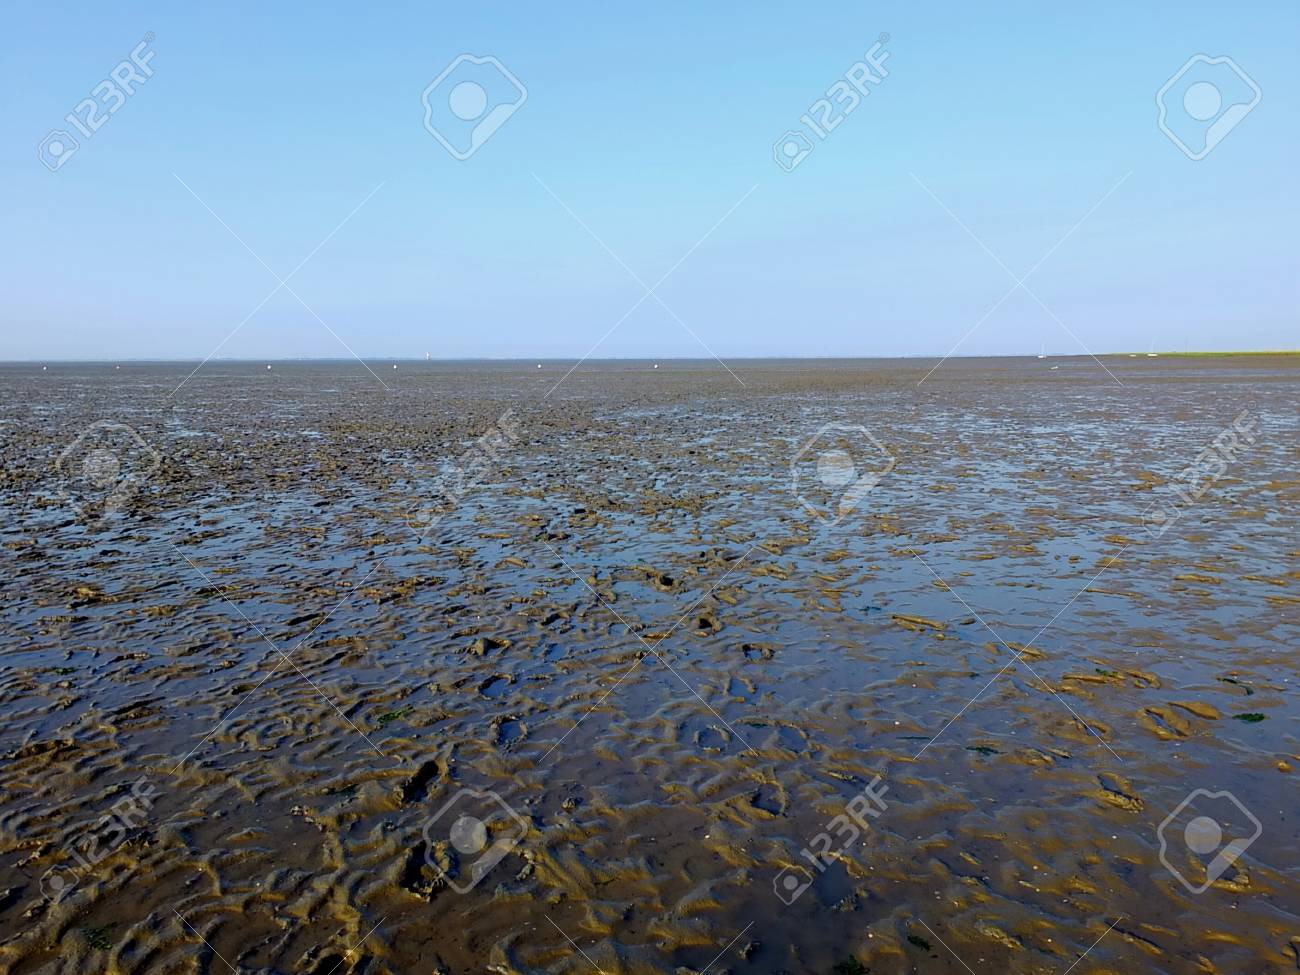 The Wadden Sea in northern Germany Standard-Bild - 47746222